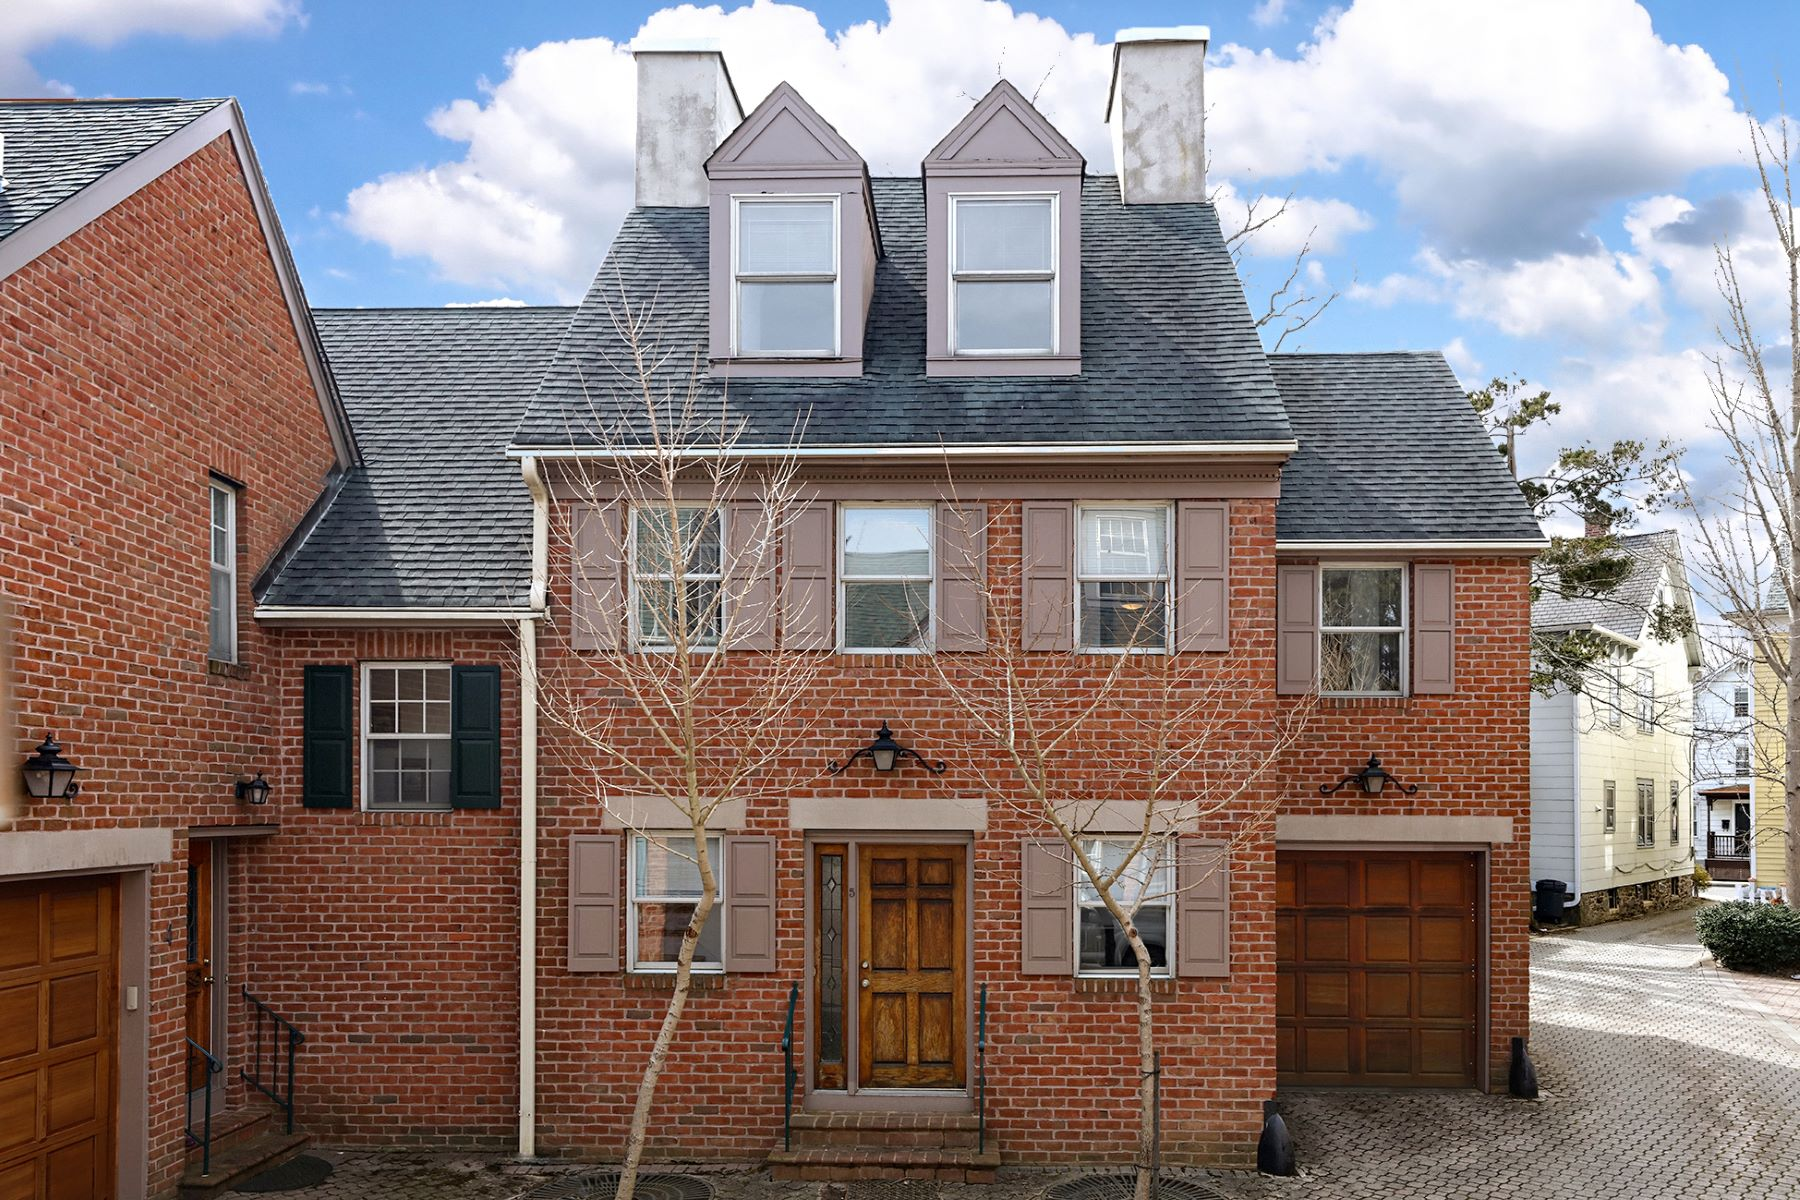 Townhouse for Sale at So Nicely Tucked Away, So Close to the University 5 Firestone Court, Princeton, New Jersey 08540 United StatesMunicipality: Princeton